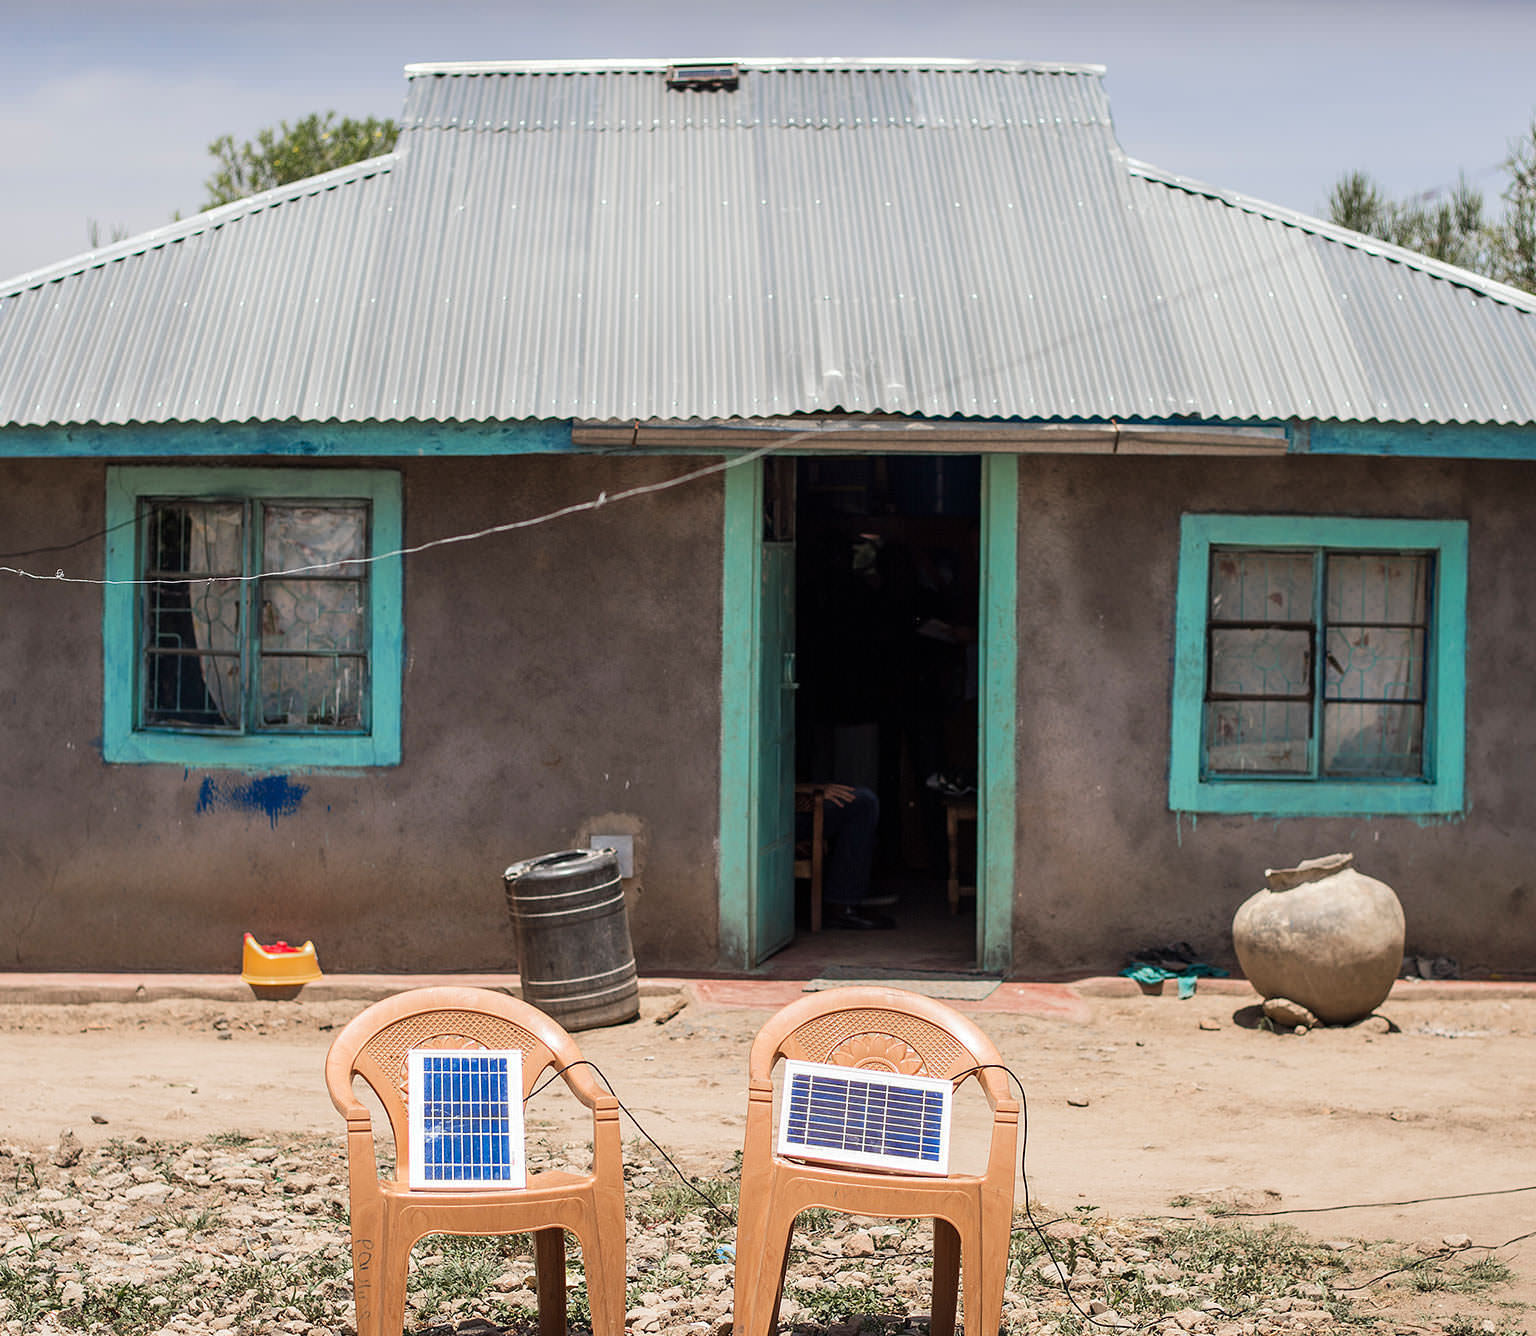 The Solar Company Making a Profit on Poor Africans